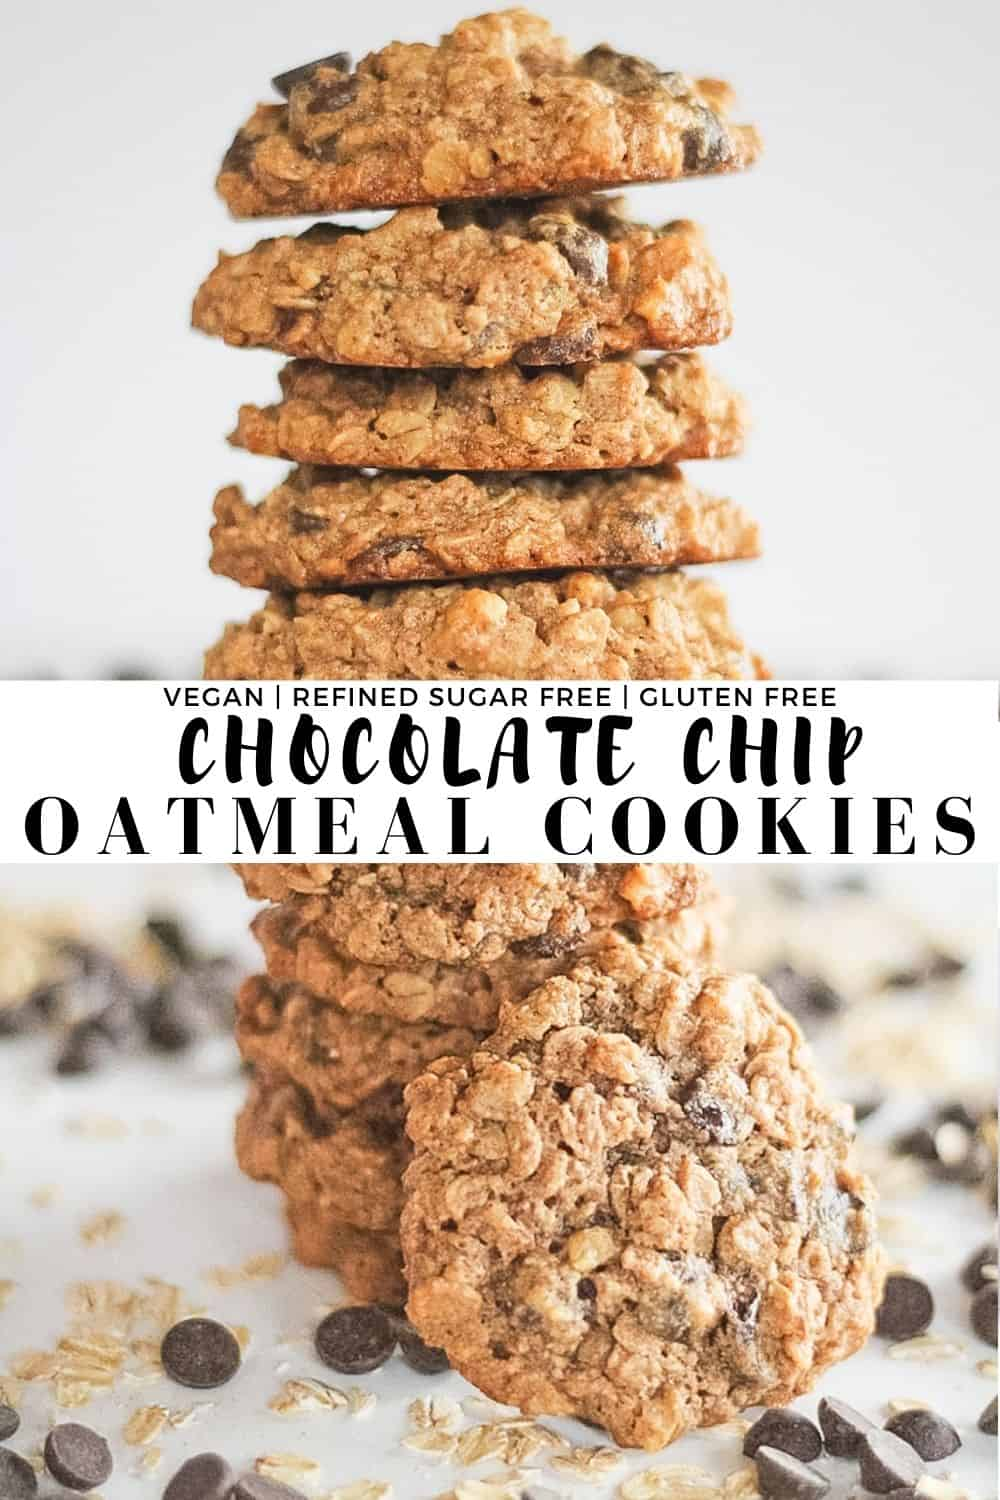 Two combined pictures of chocolate chip oatmeal cookies.